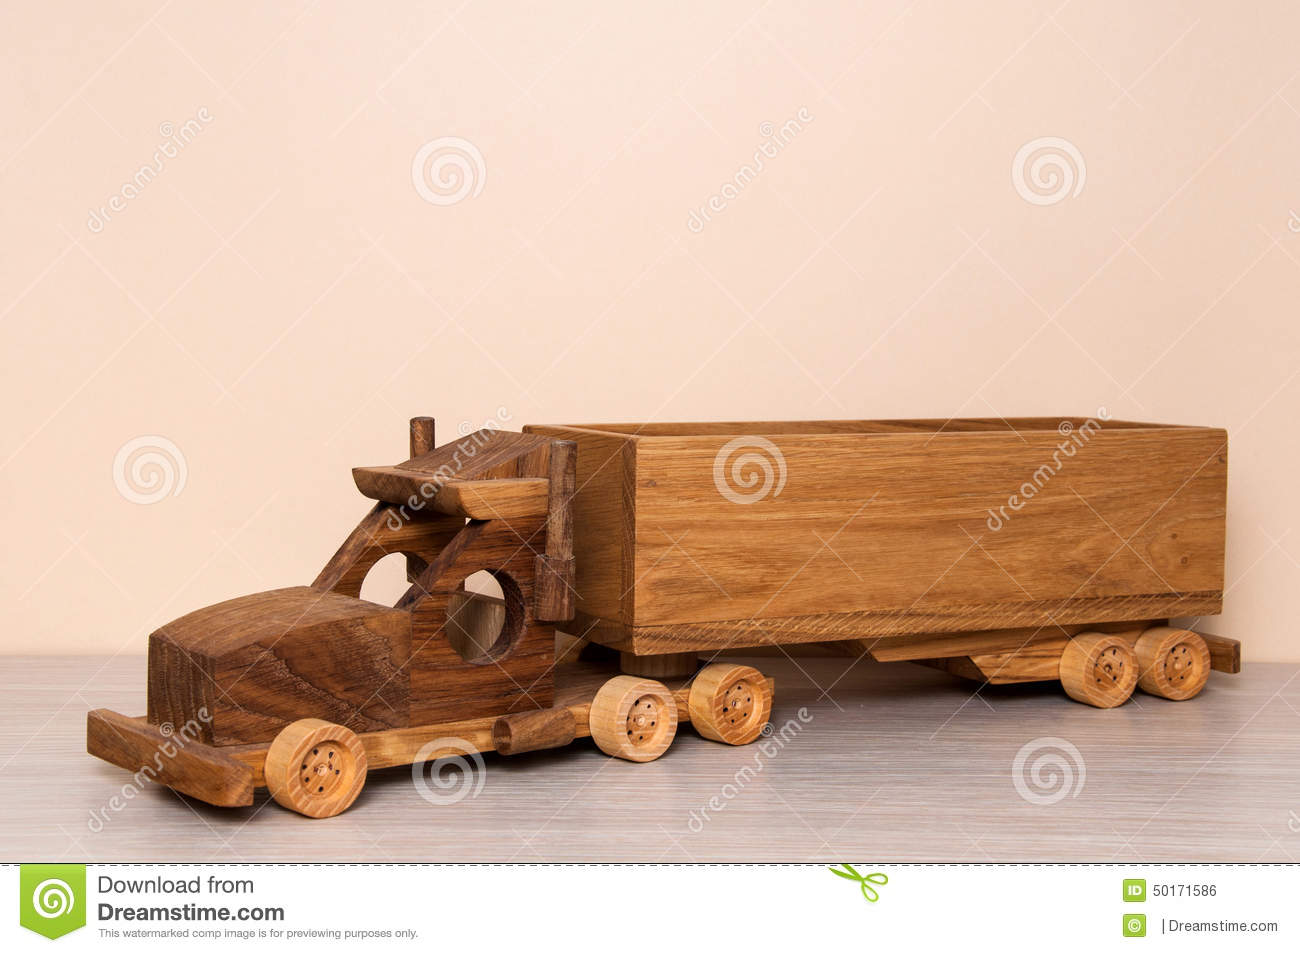 Wooden Truck Toy Stock Photo - Image: 50171586